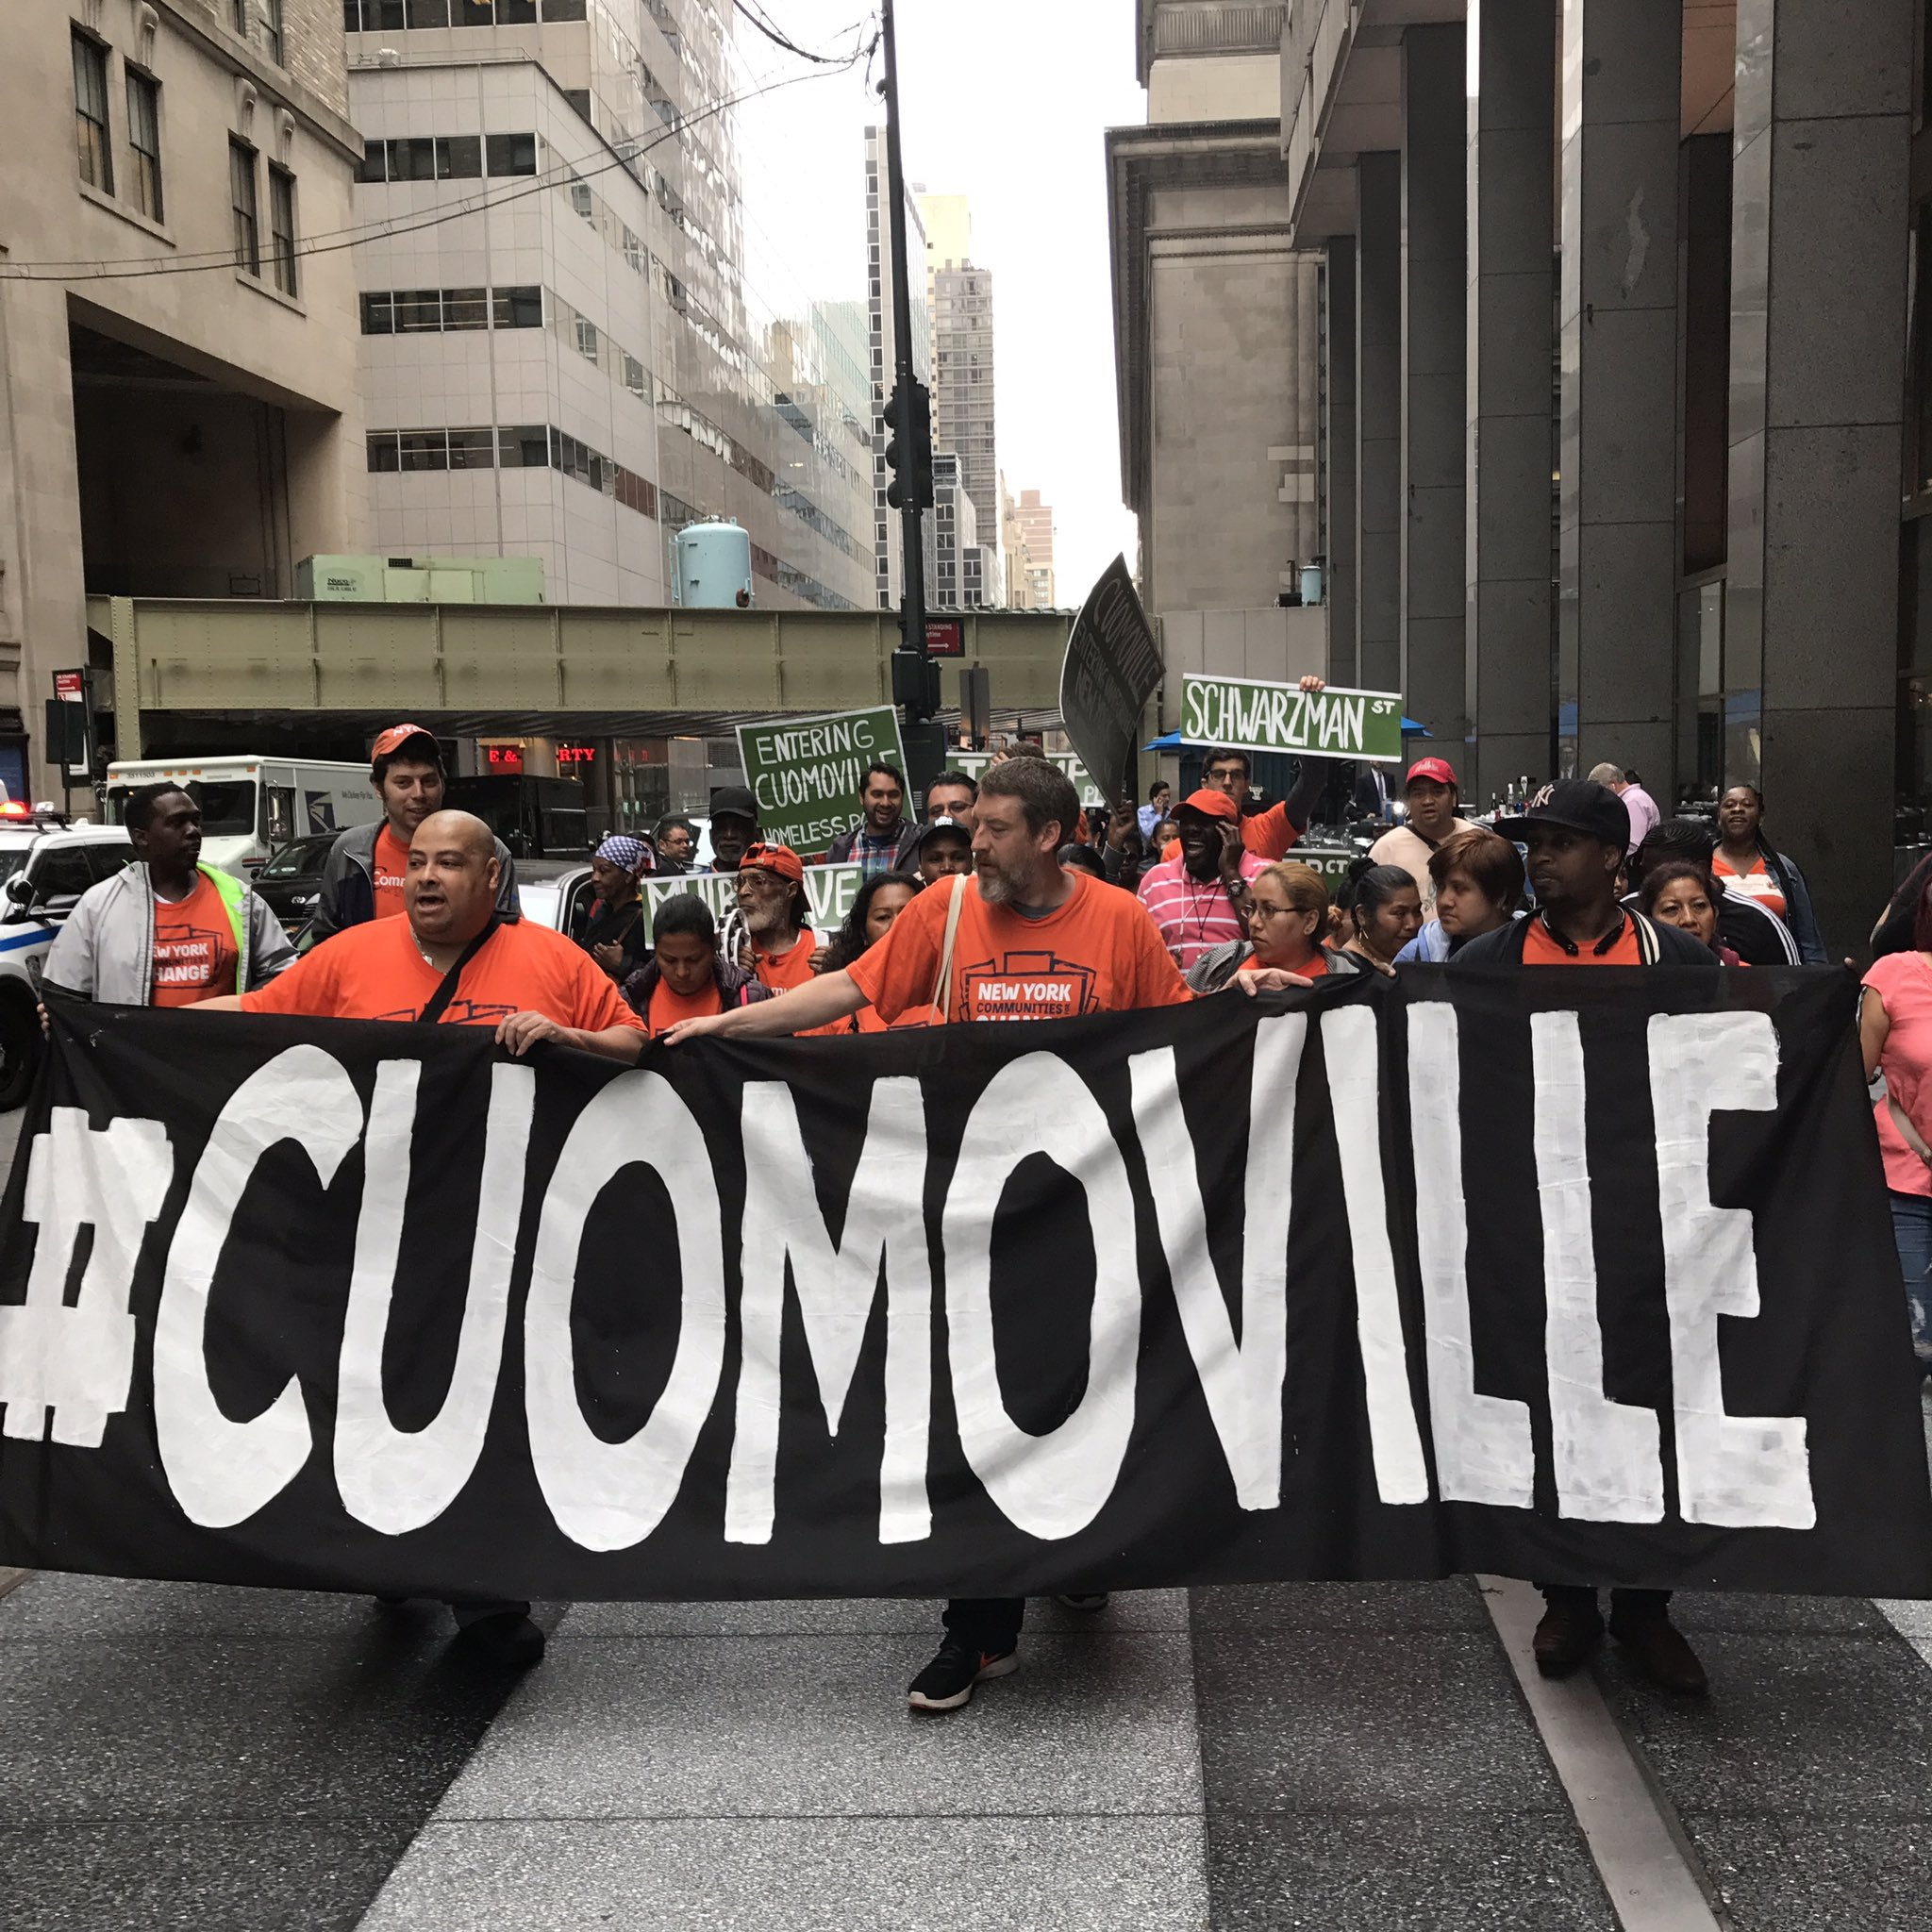 Tax the rich and house the poor!! #Cuomoville #TenantsRising https://t.co/7i1AInRmSr